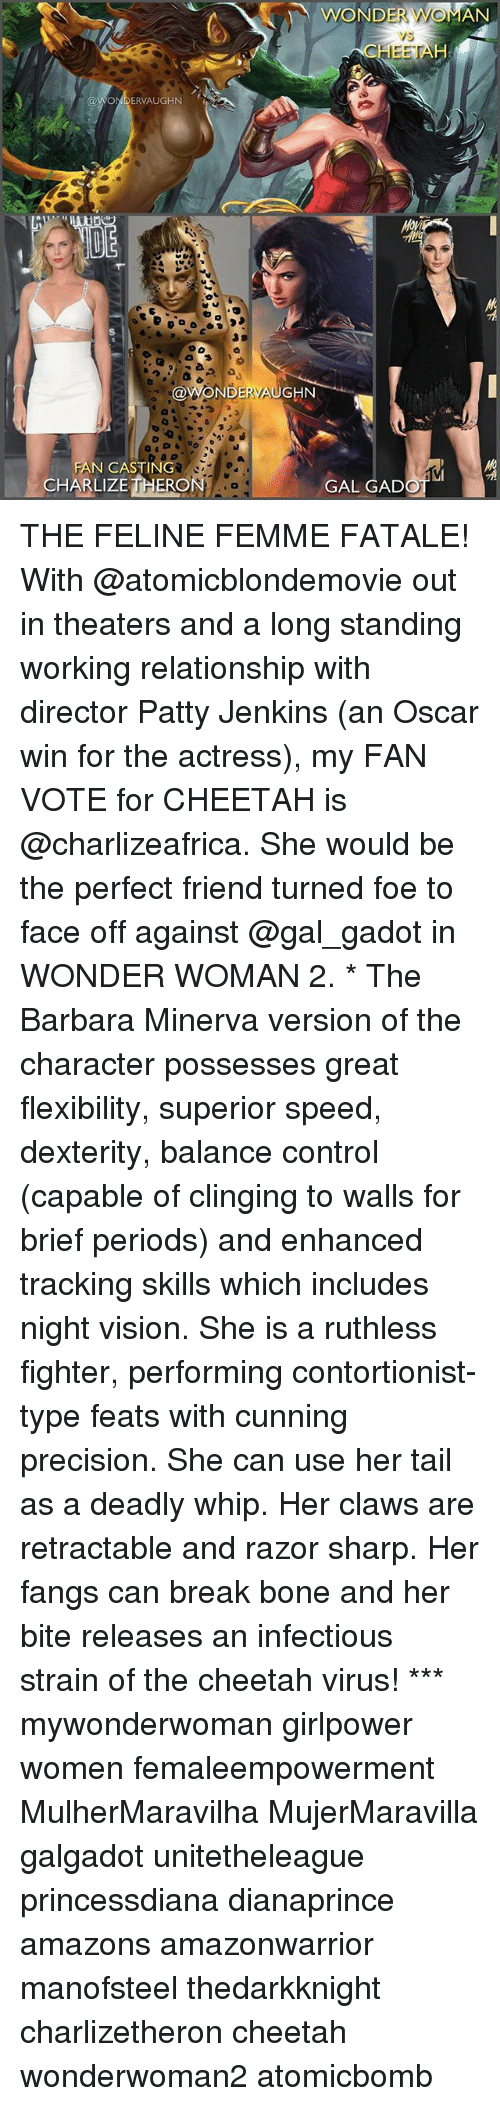 Memes, Whip, and Control: WOND  AN  vs  CHEETA  ONDERVAUGHN  @WONDERVAUGHN  N CASTING  CHARLIZE THERO  GAL GAD THE FELINE FEMME FATALE! With @atomicblondemovie out in theaters and a long standing working relationship with director Patty Jenkins (an Oscar win for the actress), my FAN VOTE for CHEETAH is @charlizeafrica. She would be the perfect friend turned foe to face off against @gal_gadot in WONDER WOMAN 2. * The Barbara Minerva version of the character possesses great flexibility, superior speed, dexterity, balance control (capable of clinging to walls for brief periods) and enhanced tracking skills which includes night vision. She is a ruthless fighter, performing contortionist-type feats with cunning precision. She can use her tail as a deadly whip. Her claws are retractable and razor sharp. Her fangs can break bone and her bite releases an infectious strain of the cheetah virus! *** mywonderwoman girlpower women femaleempowerment MulherMaravilha MujerMaravilla galgadot unitetheleague princessdiana dianaprince amazons amazonwarrior manofsteel thedarkknight charlizetheron cheetah wonderwoman2 atomicbomb